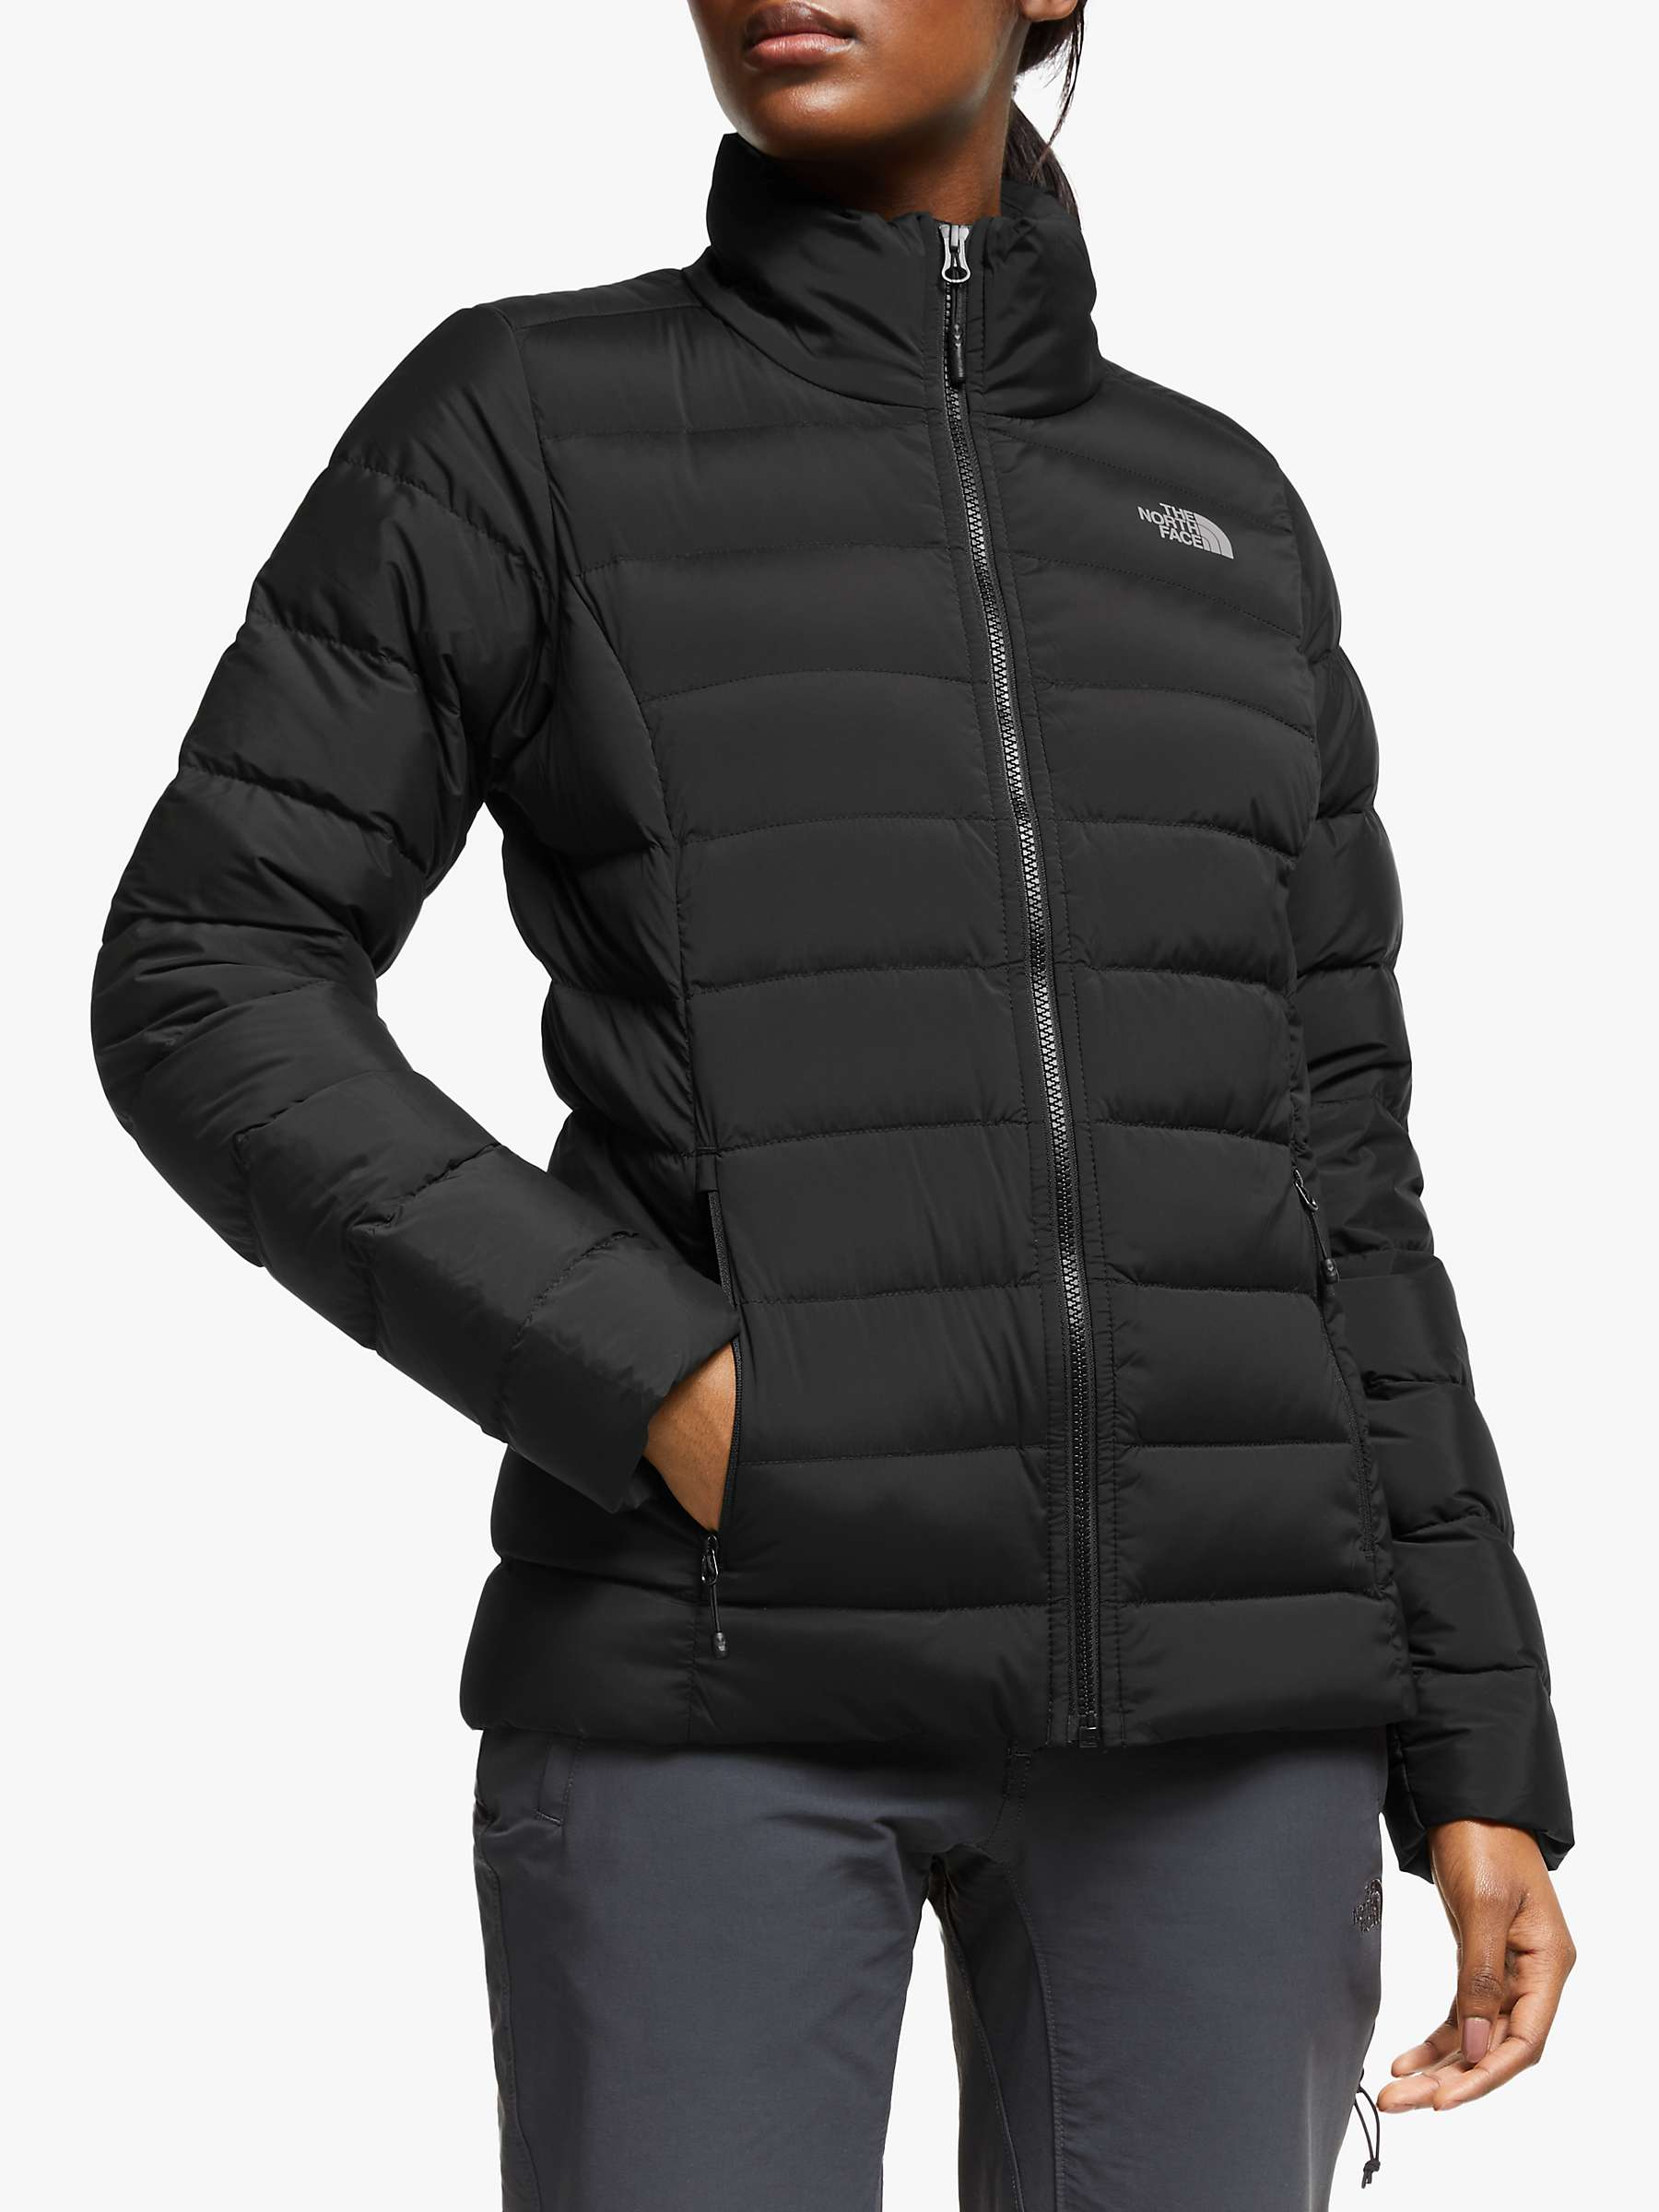 Best Deals For The North Face Jackets